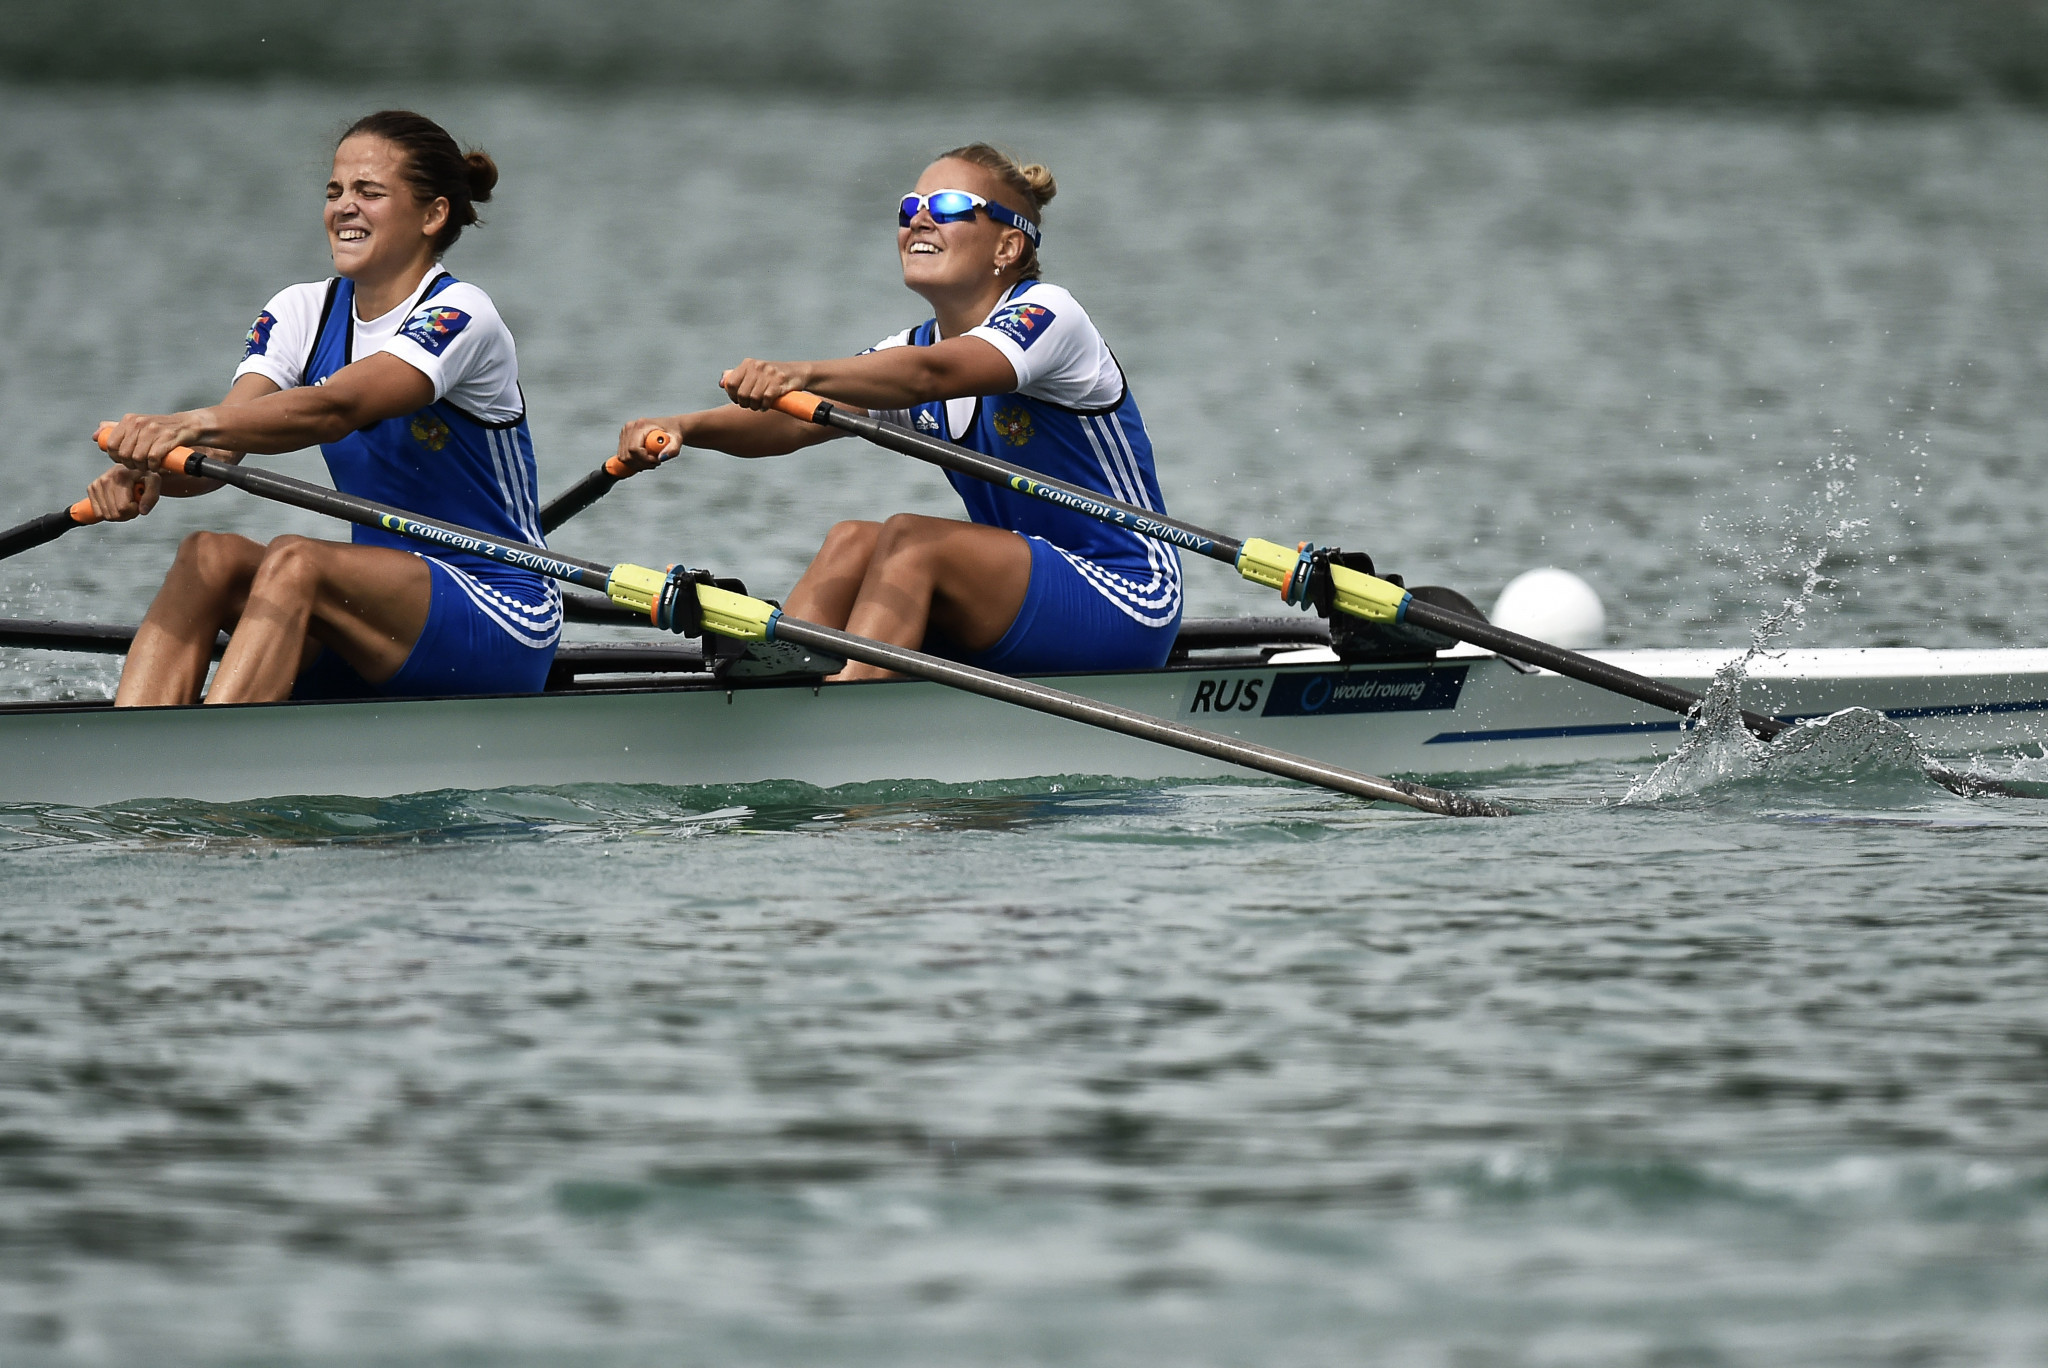 Russian rower banned from Rio 2016 to compete for Belarus at Tokyo 2020 after IOC approves switch